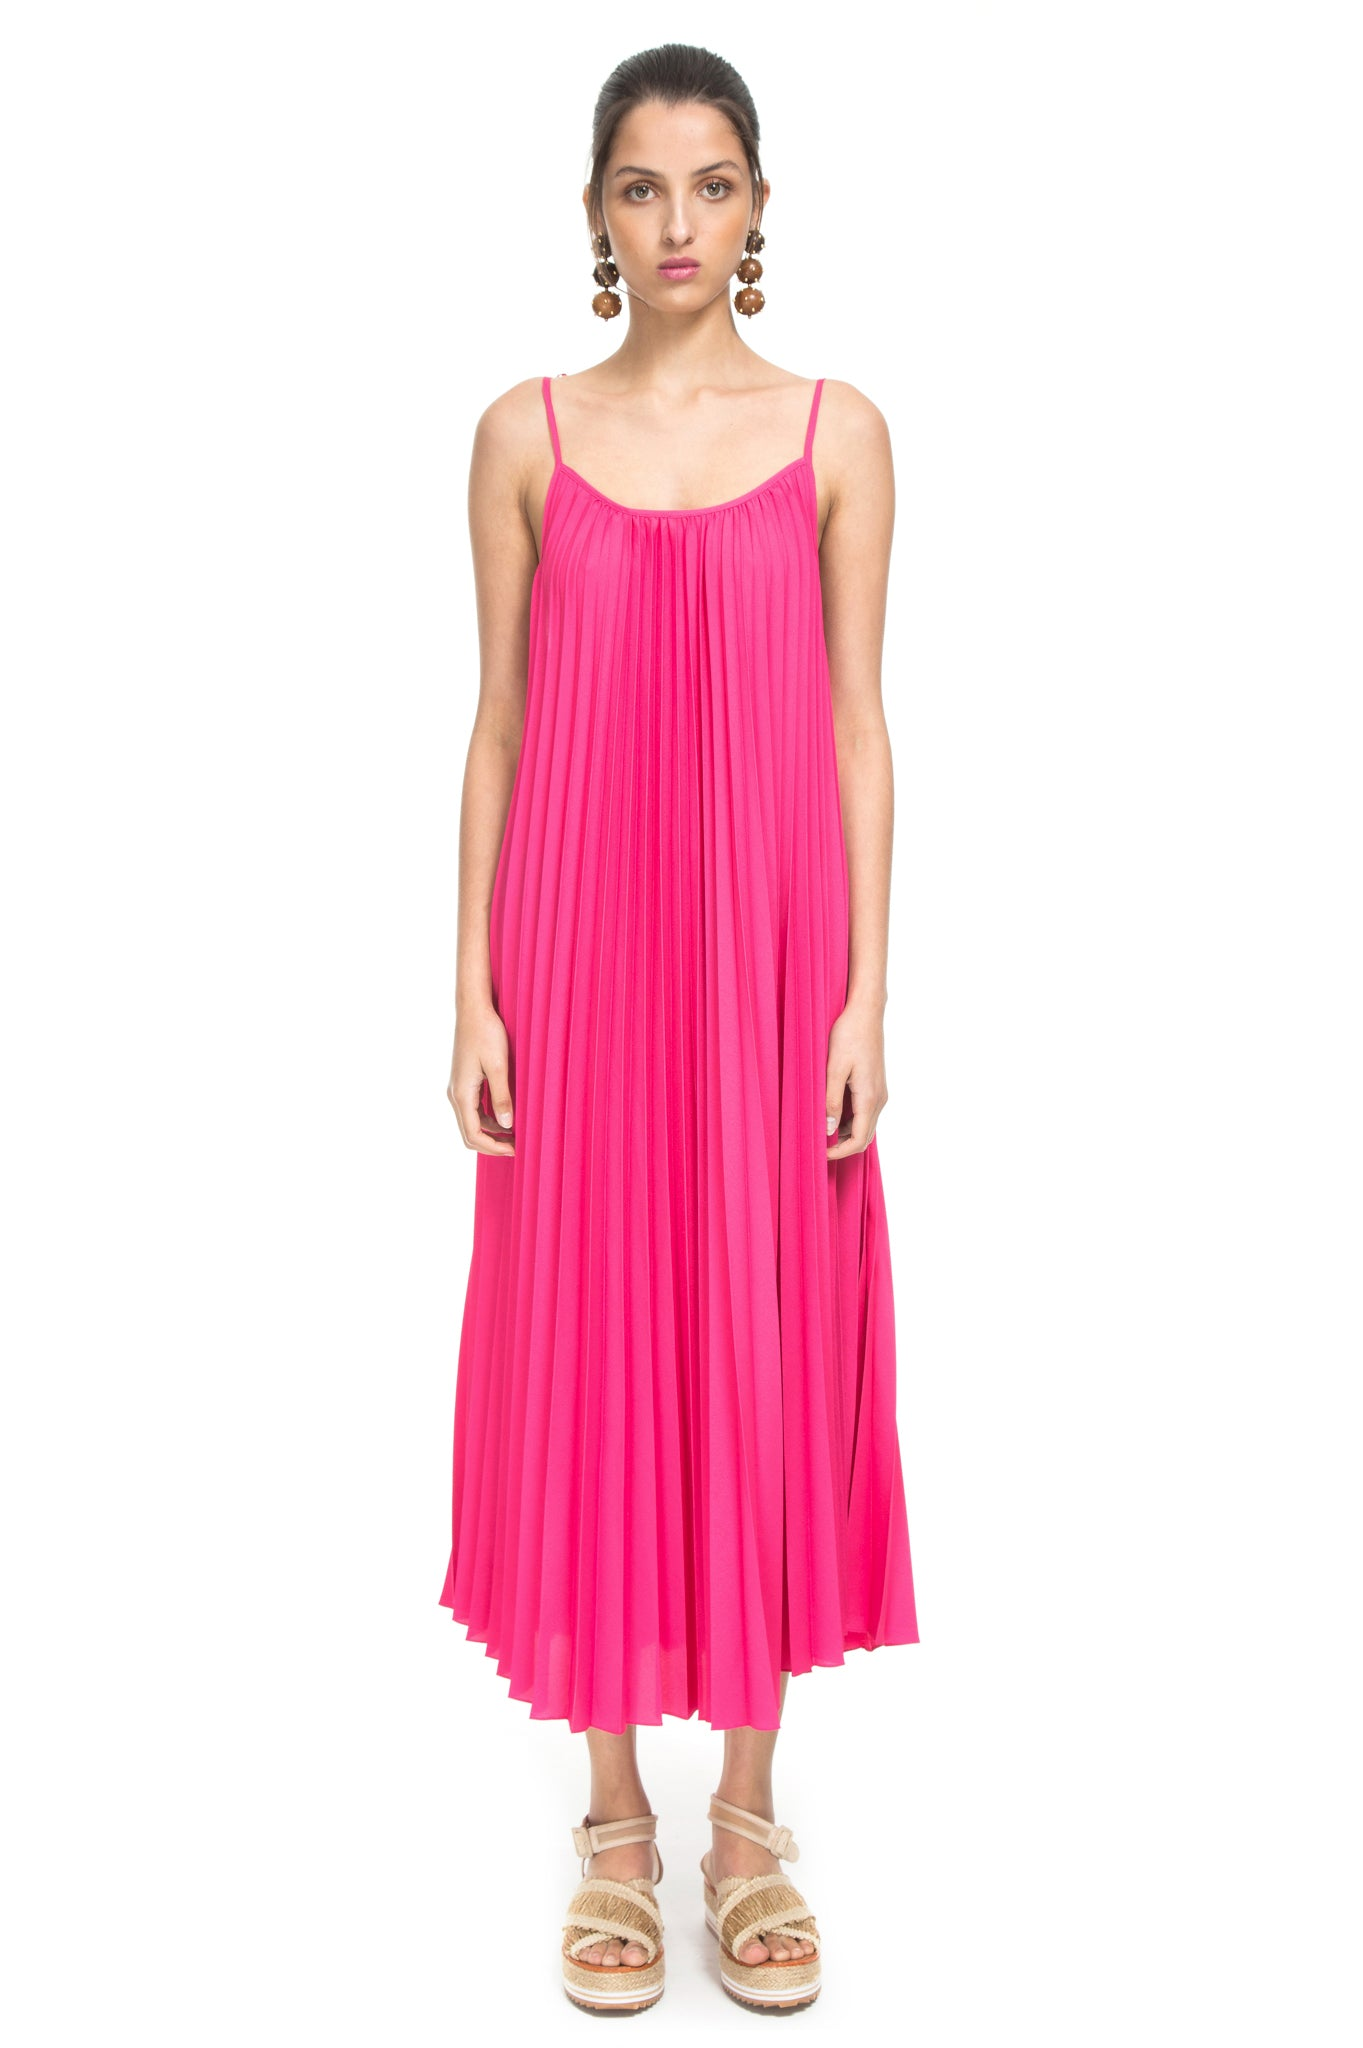 PINK T SHIRT PLEATED DRESS